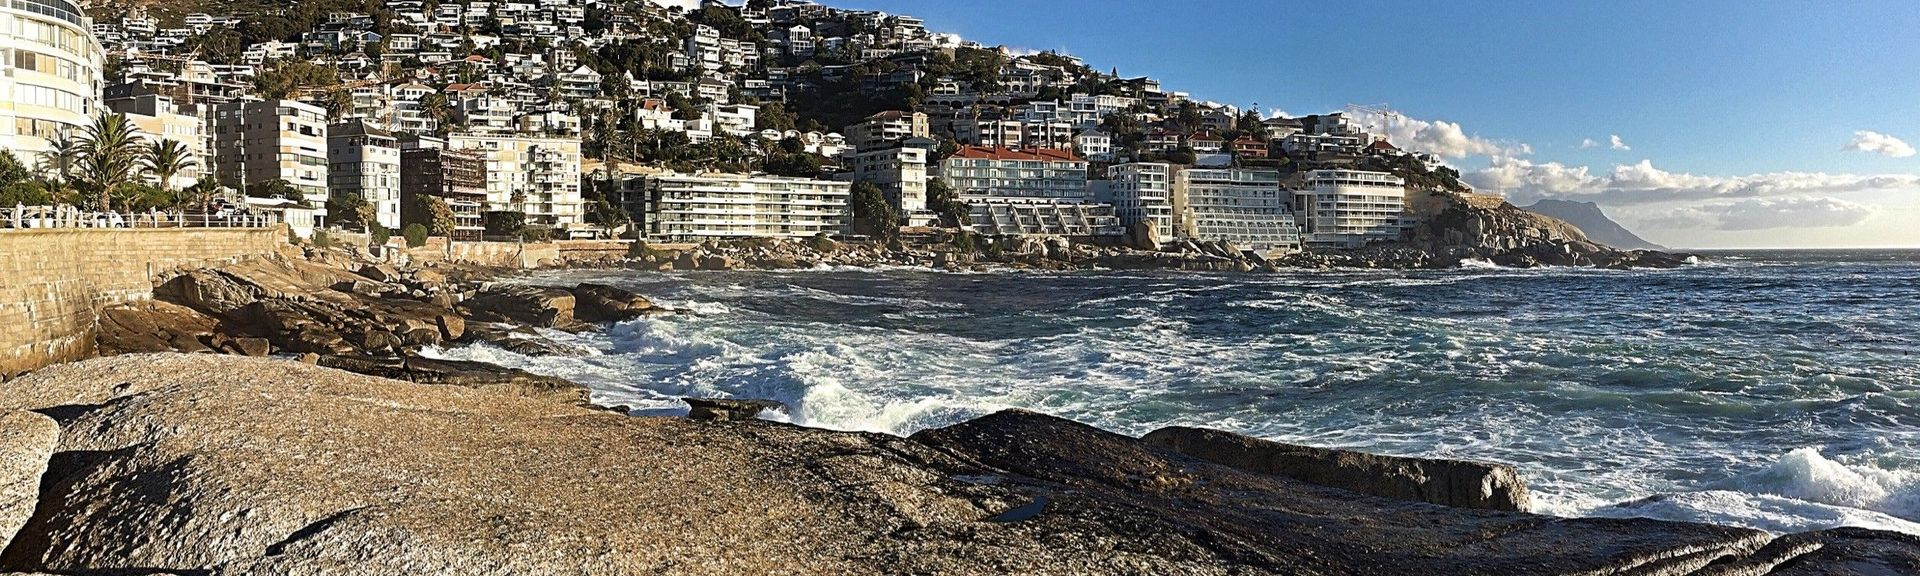 Sea Point, Cape Town, Western Cape, South Africa